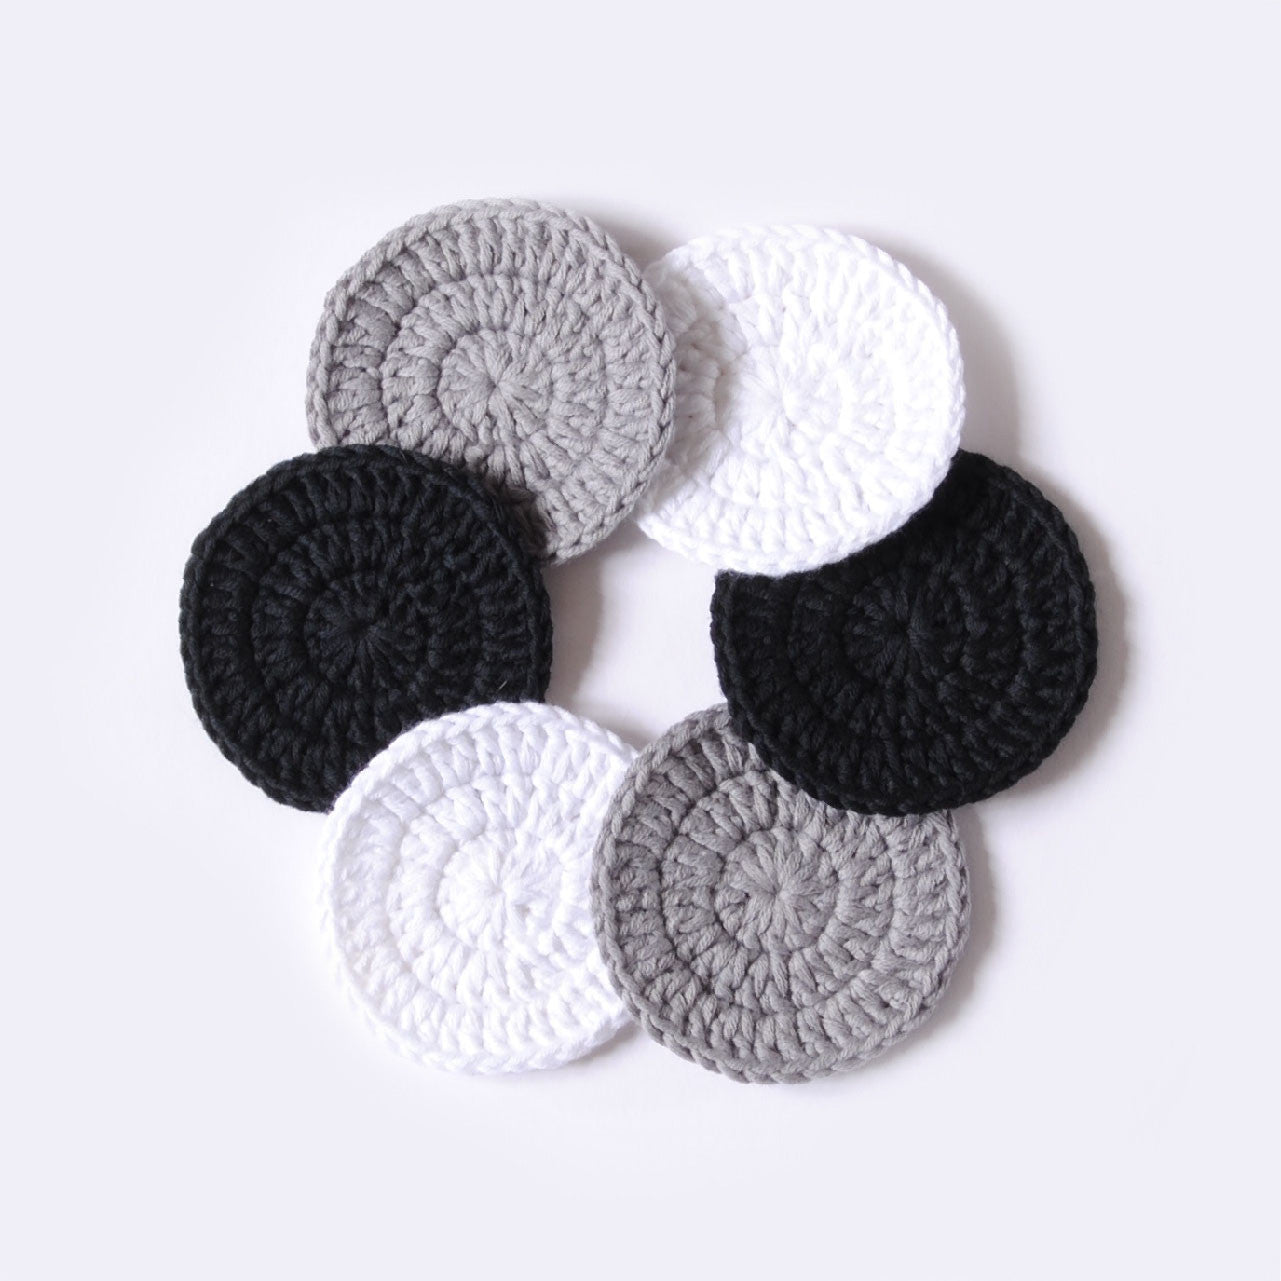 ORGANIC COTTON FACIAL ROUNDS //mixed//